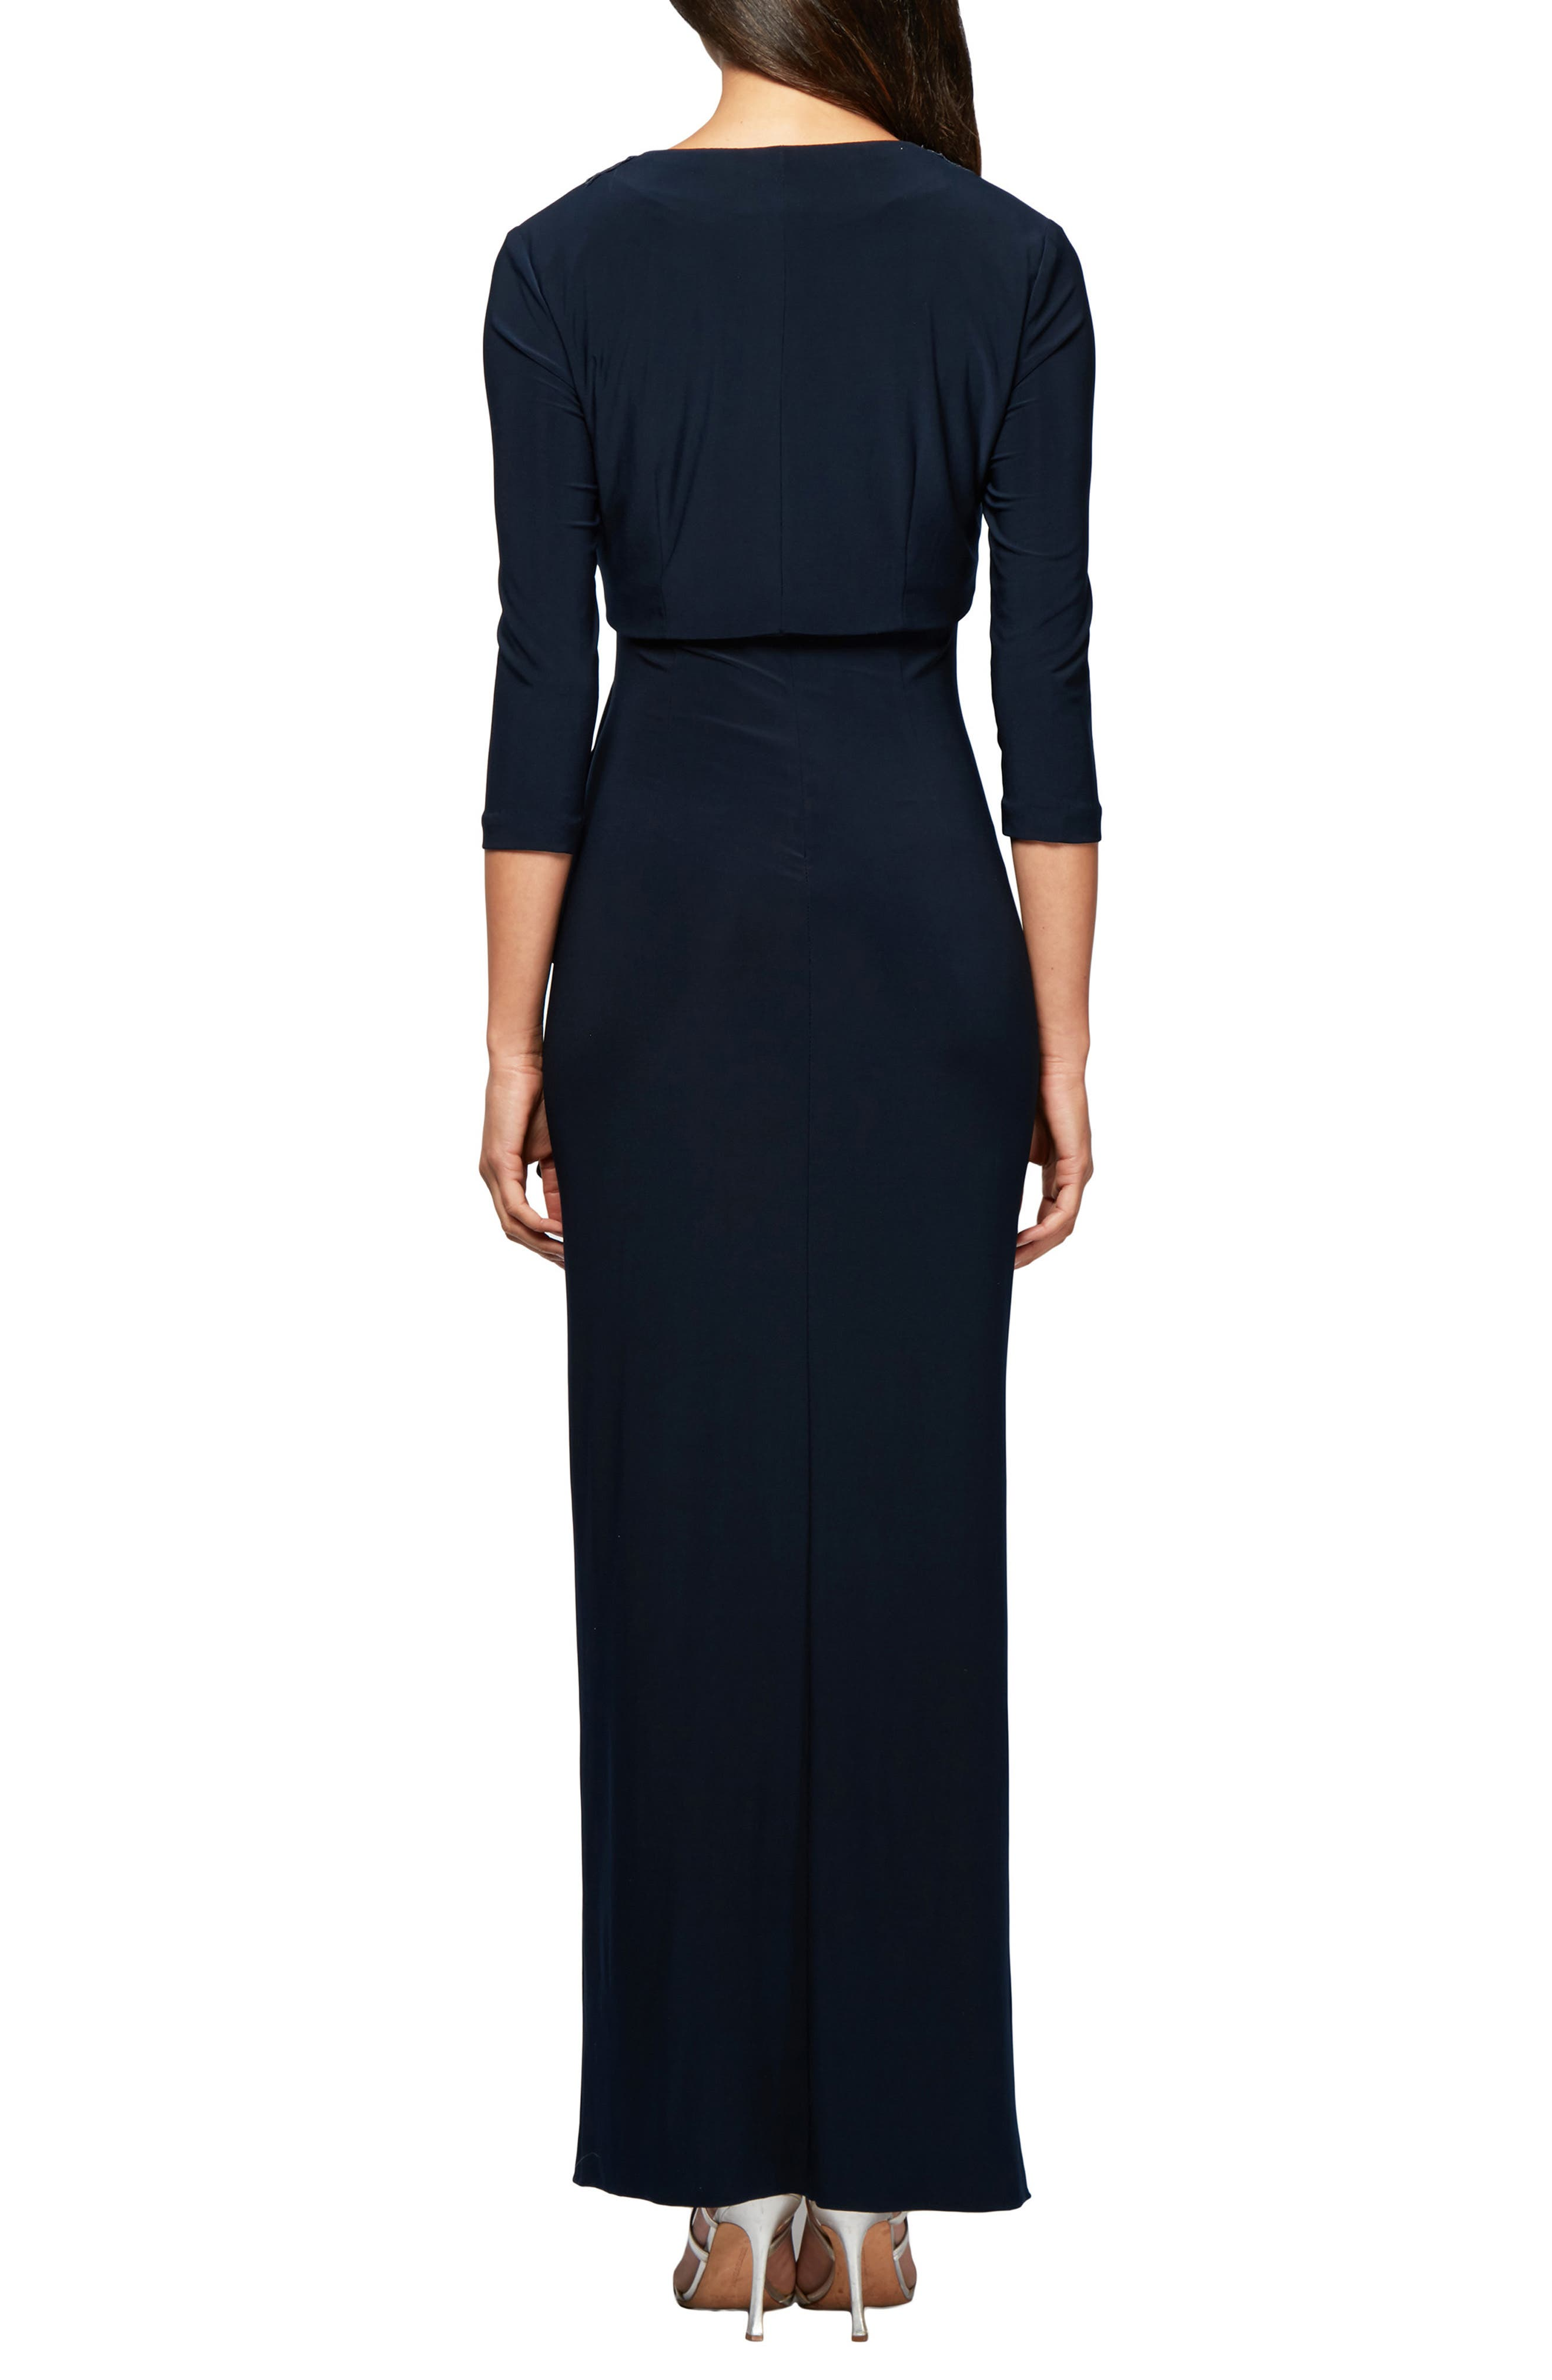 ALEX EVENINGS, Side Ruched Evening Dress with Bolero, Alternate thumbnail 2, color, 410